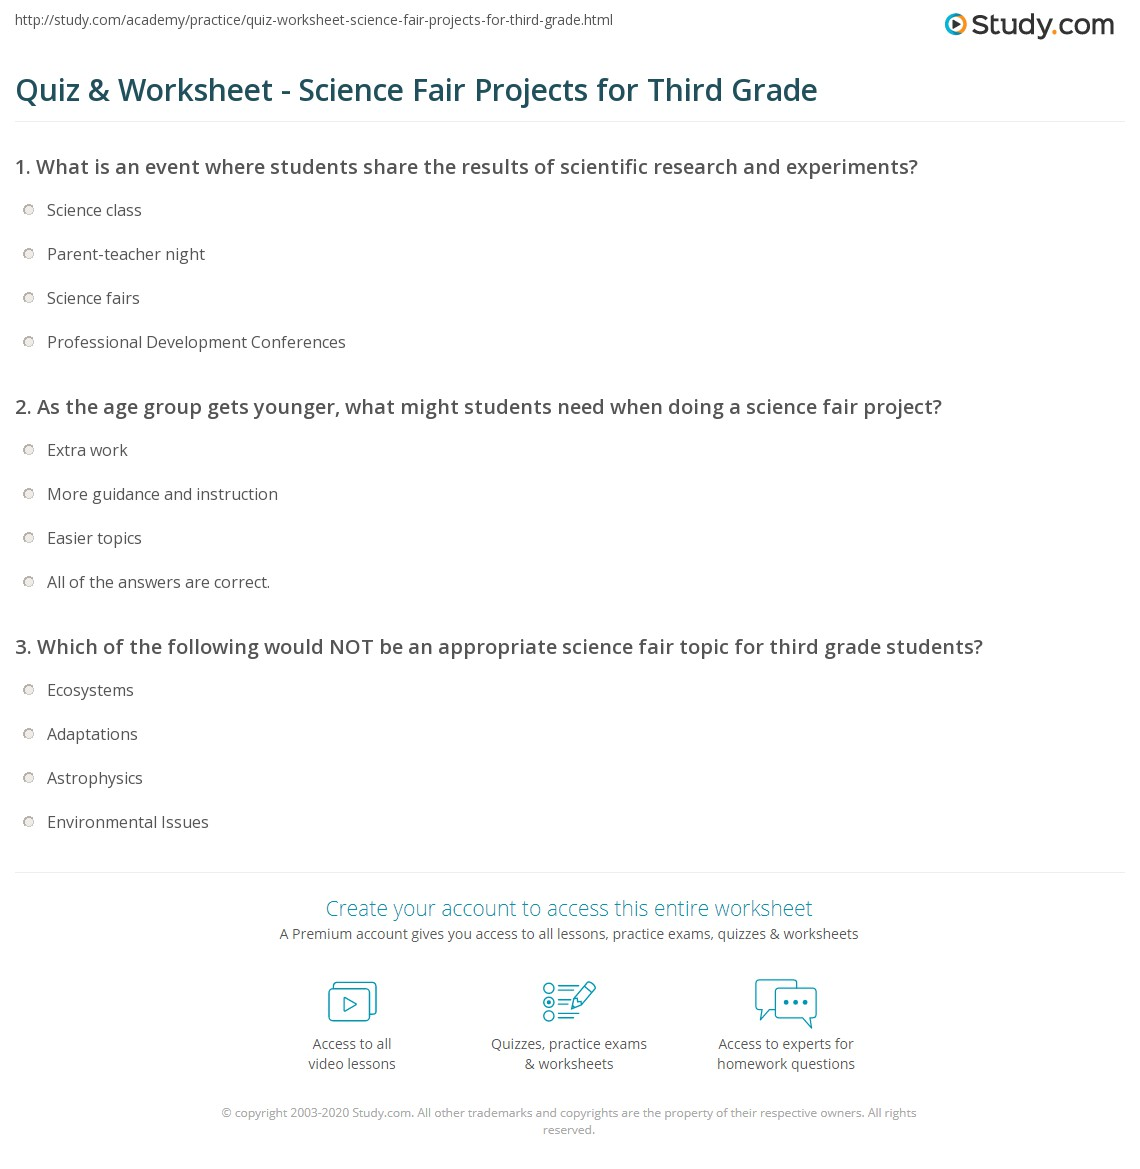 Worksheets Science 3rd Grade Worksheets quiz worksheet science fair projects for third grade study com print 3rd worksheet